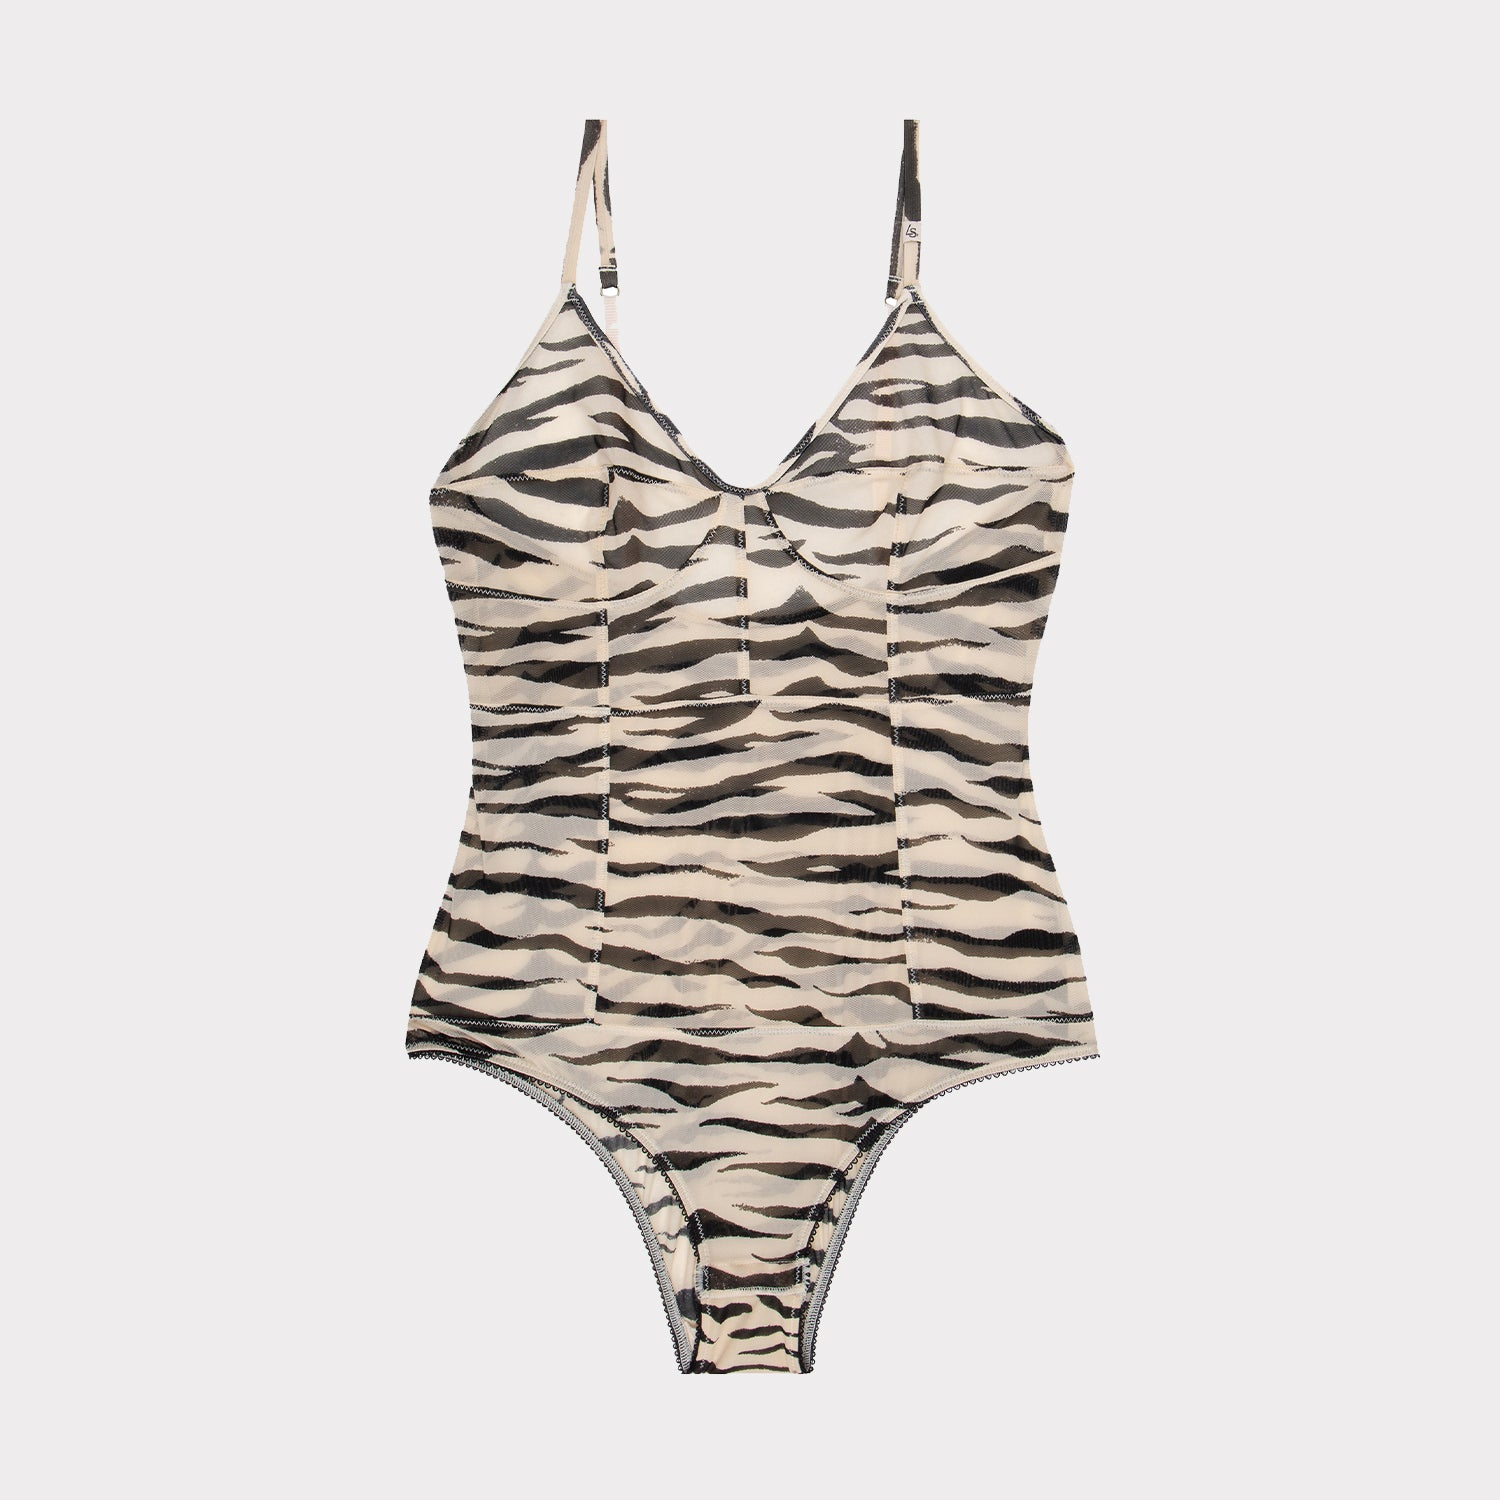 cece luxury bodysuit in zebra and tiger print by Love Stories at Secret Location